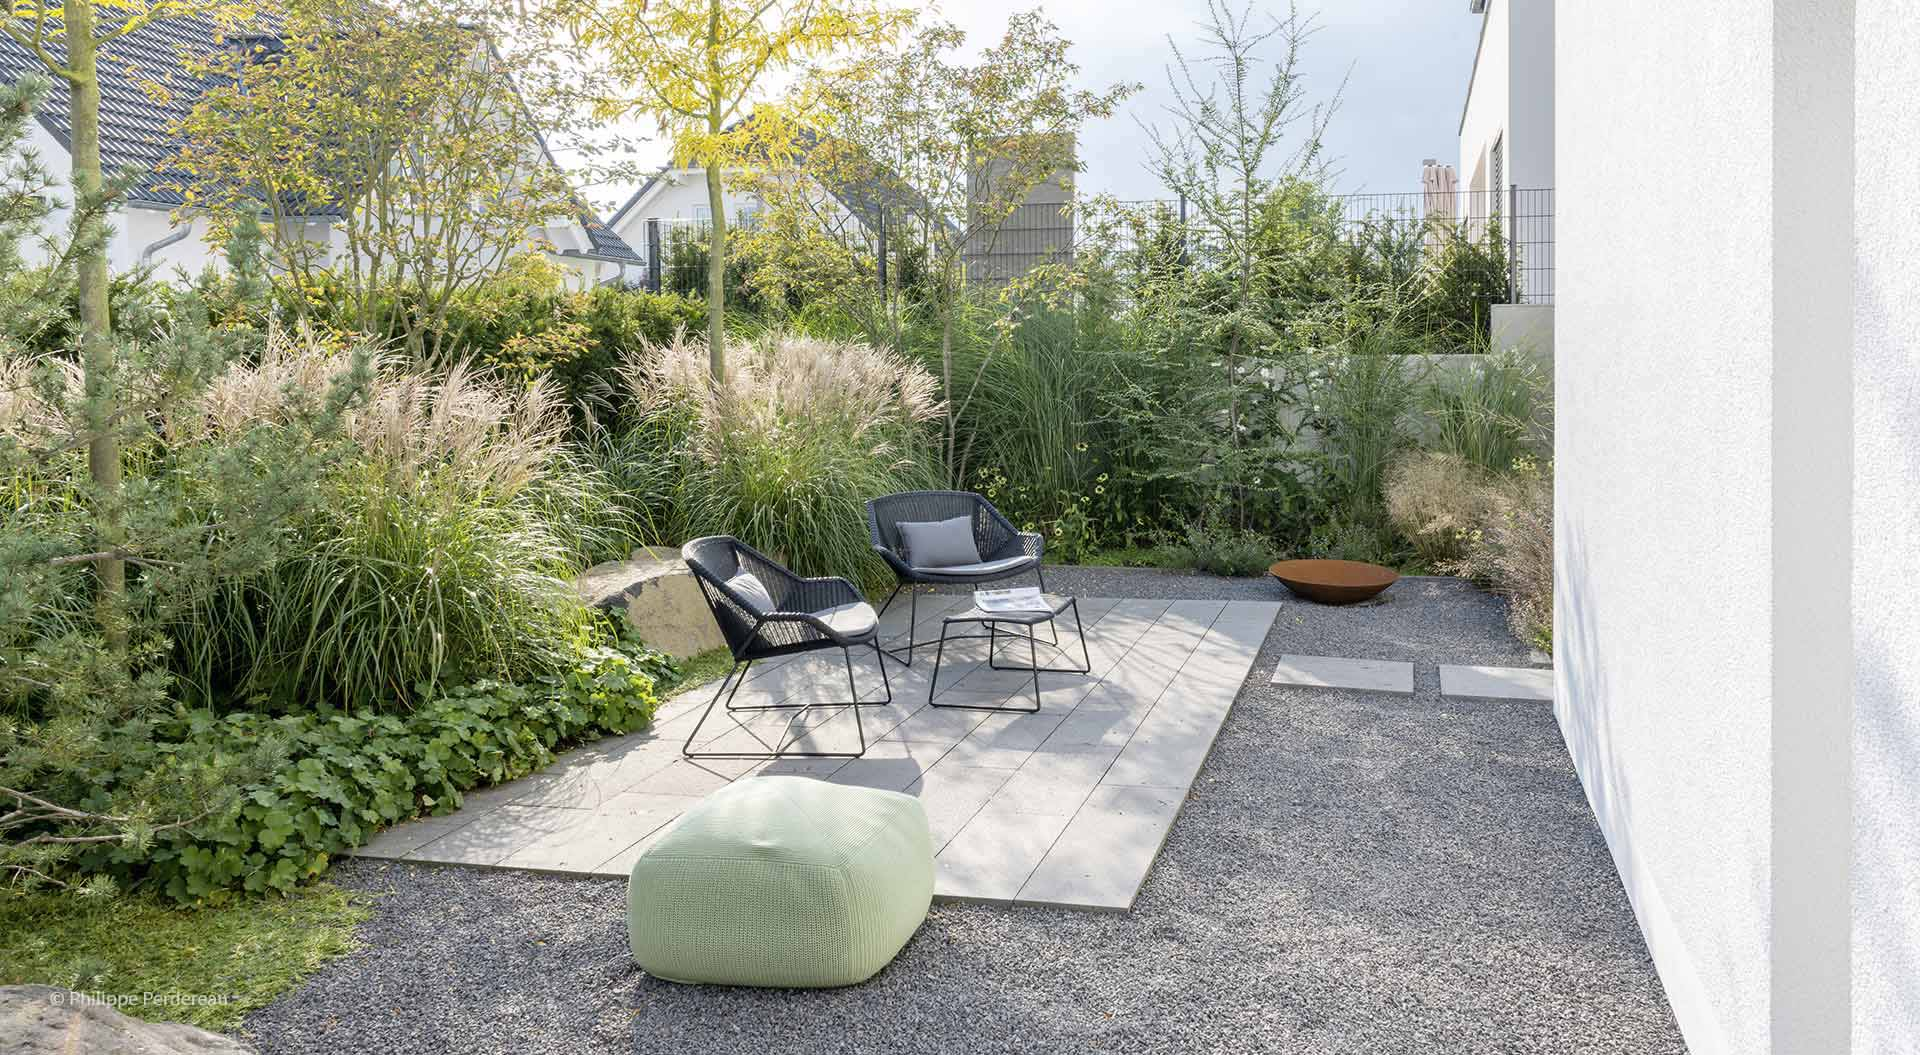 Plates that form a patio on a gravel floor in front of plants